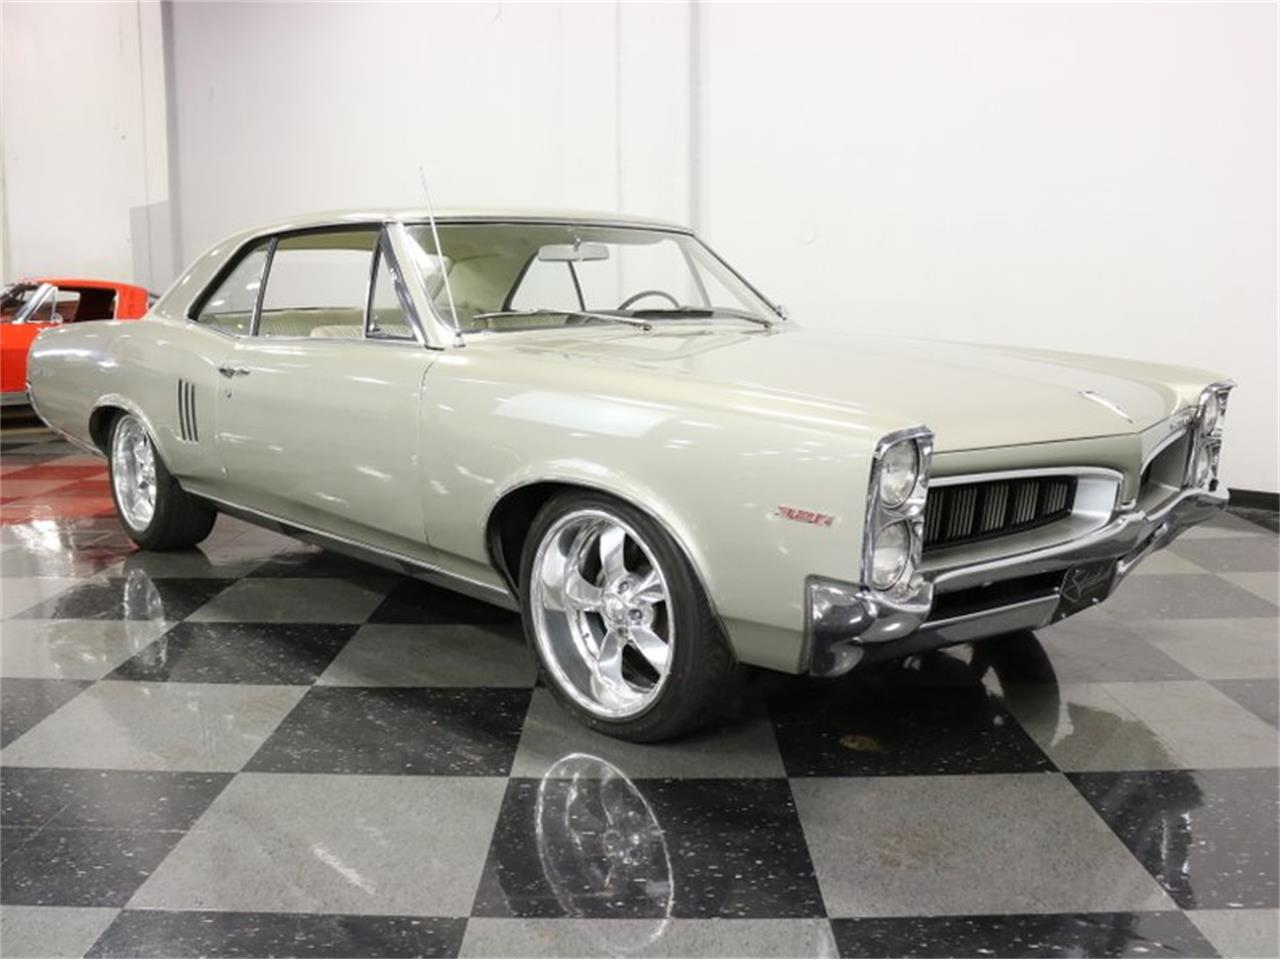 Large Picture of '67 Pontiac LeMans - $46,995.00 Offered by Streetside Classics - Dallas / Fort Worth - LSP2